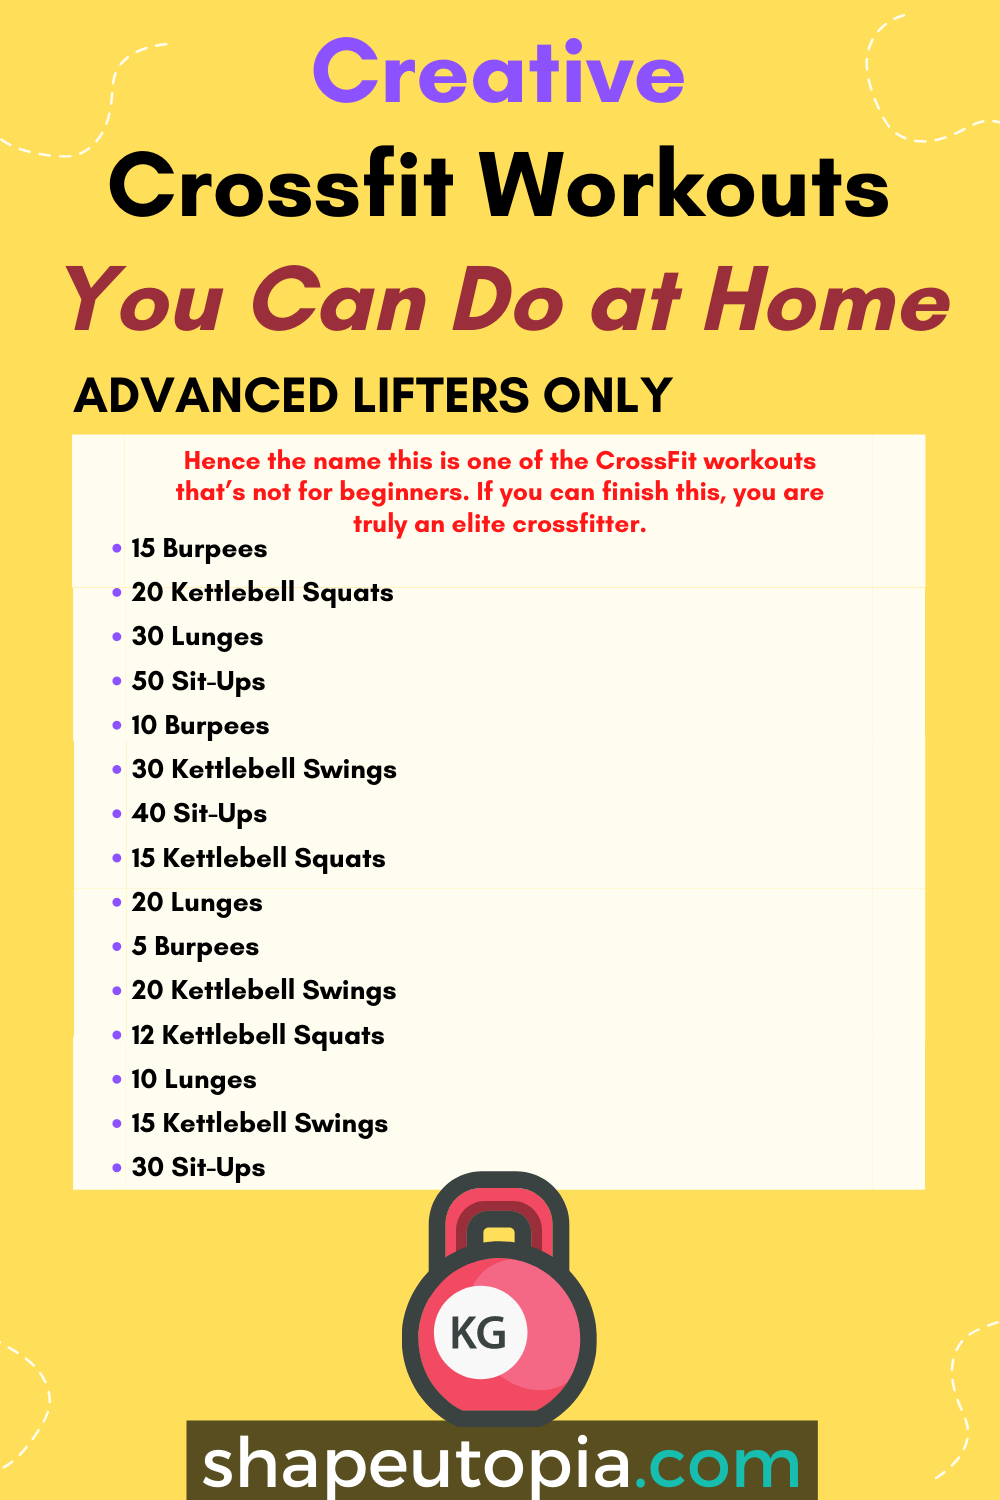 Advanced Lifters Only